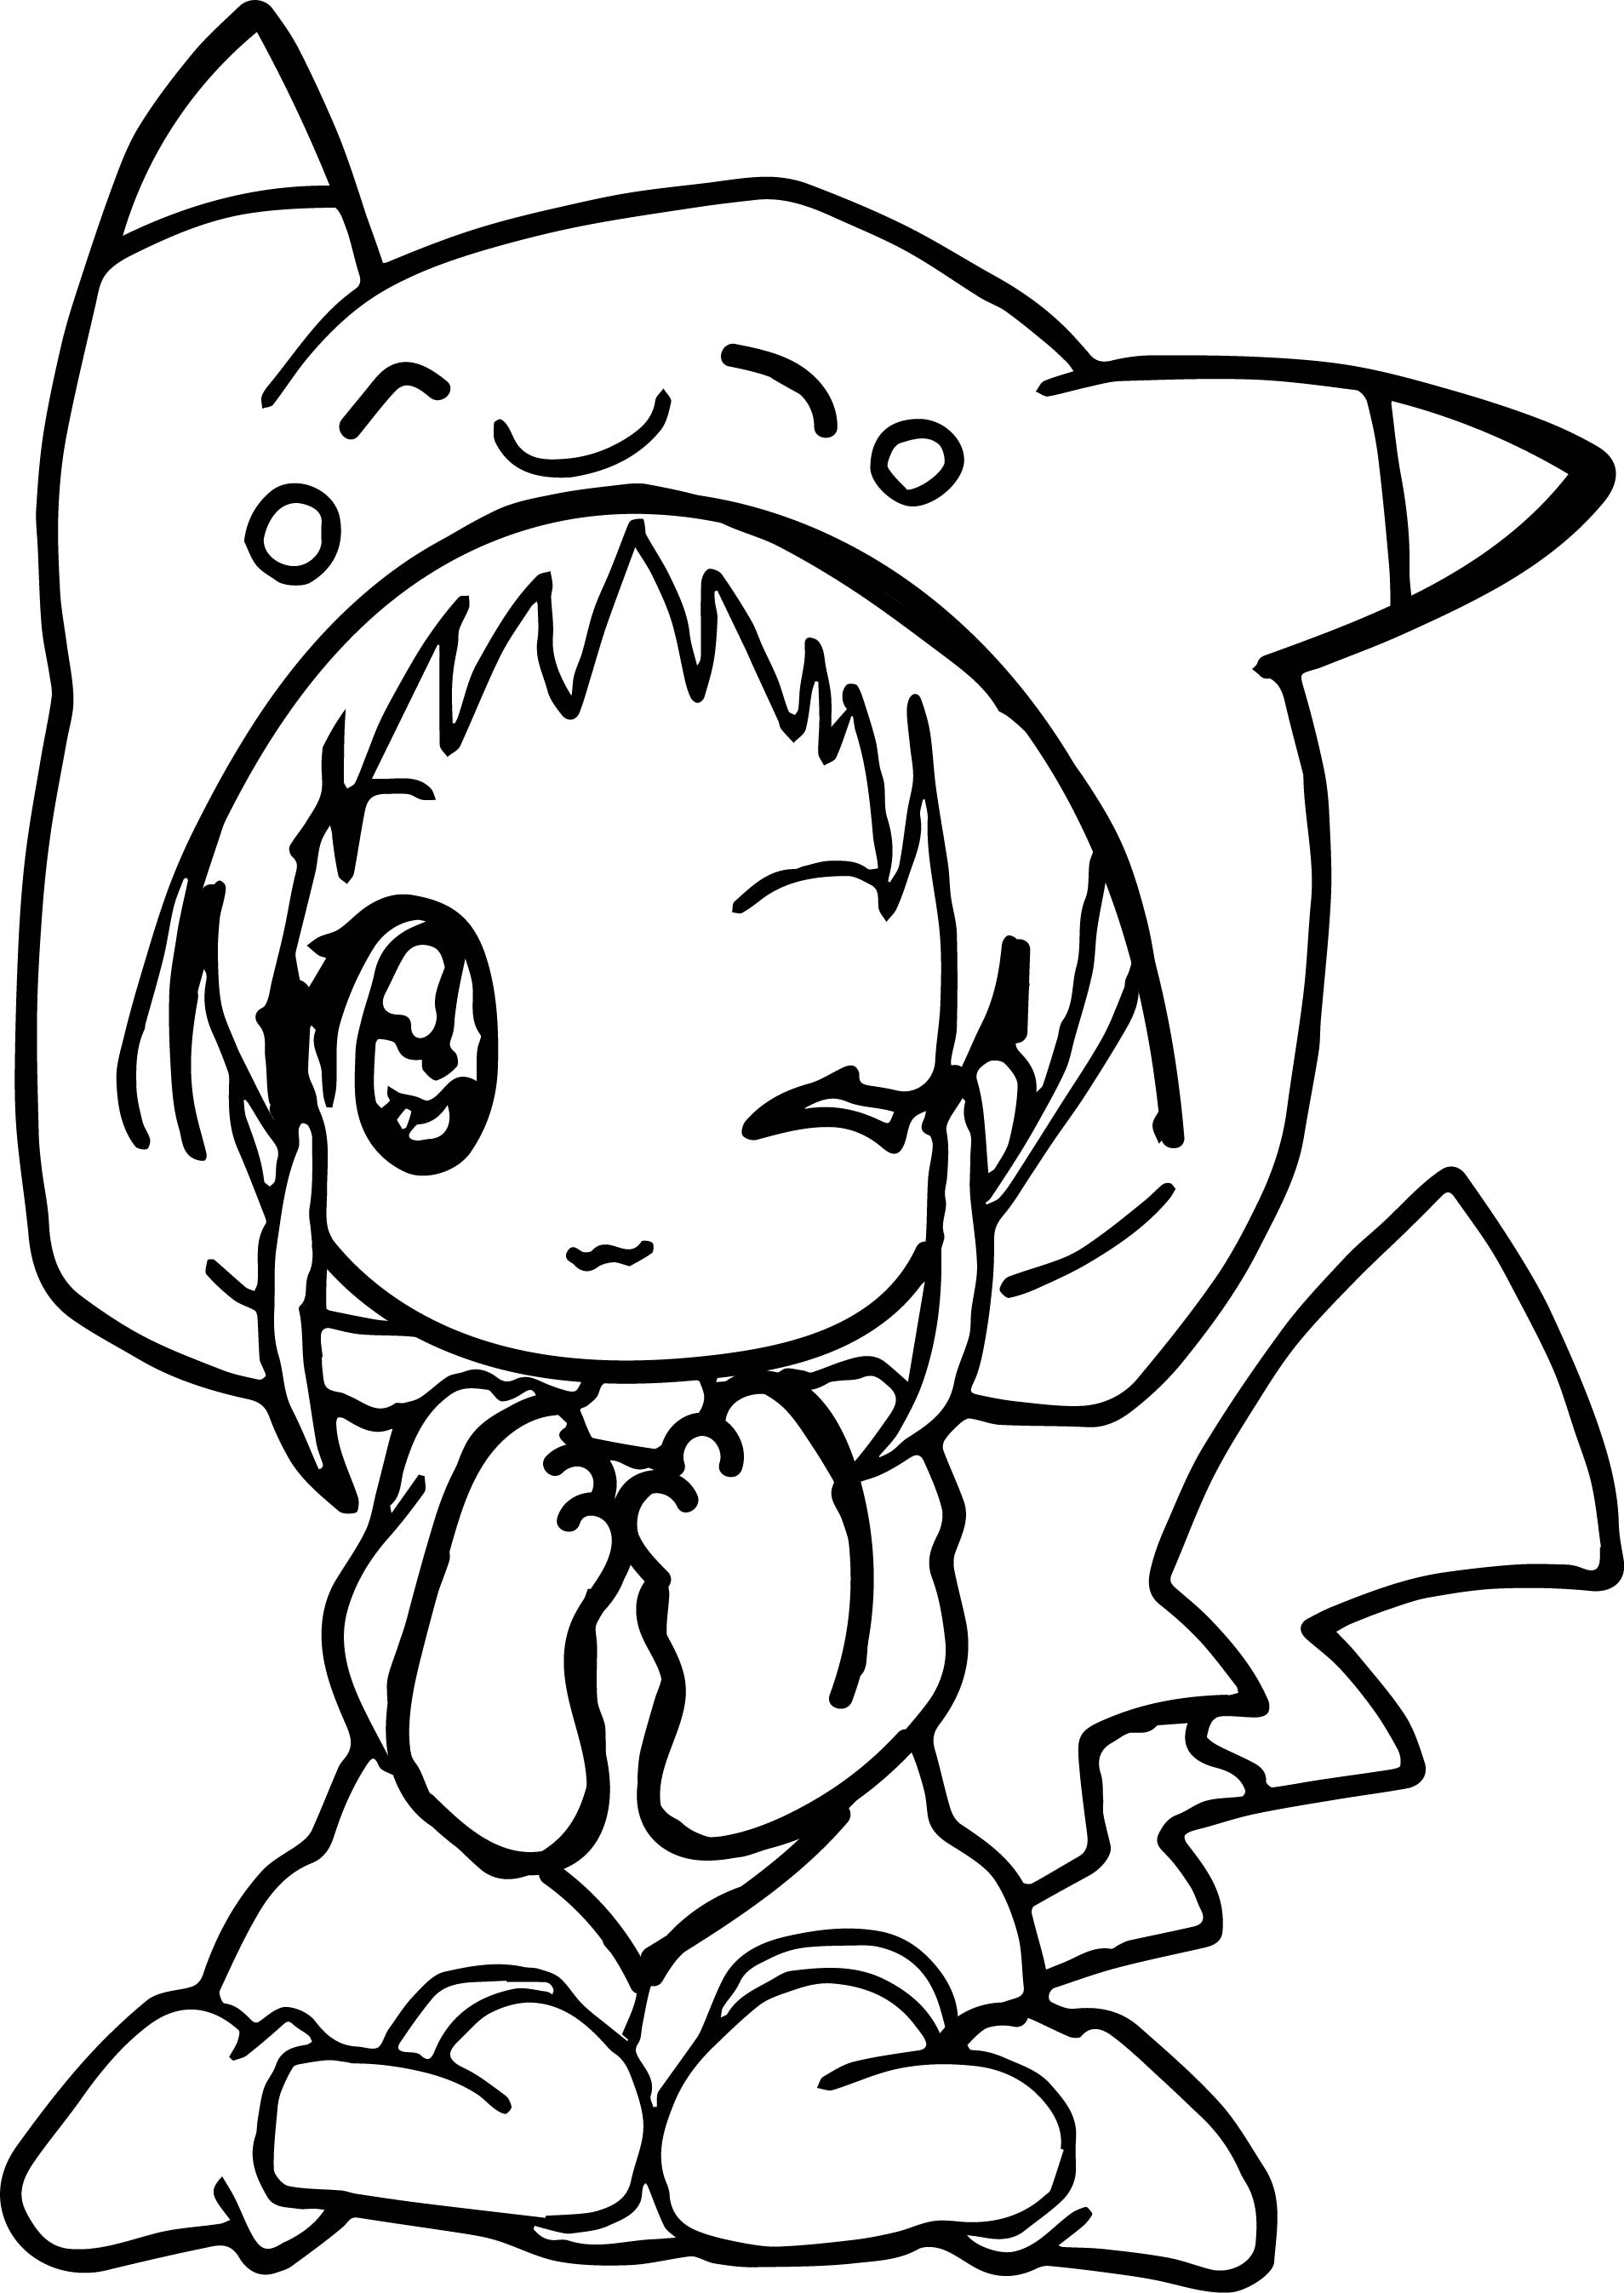 Co coloring pages of anime for teens - Anime Girl Pikachu Dress Coloring Page